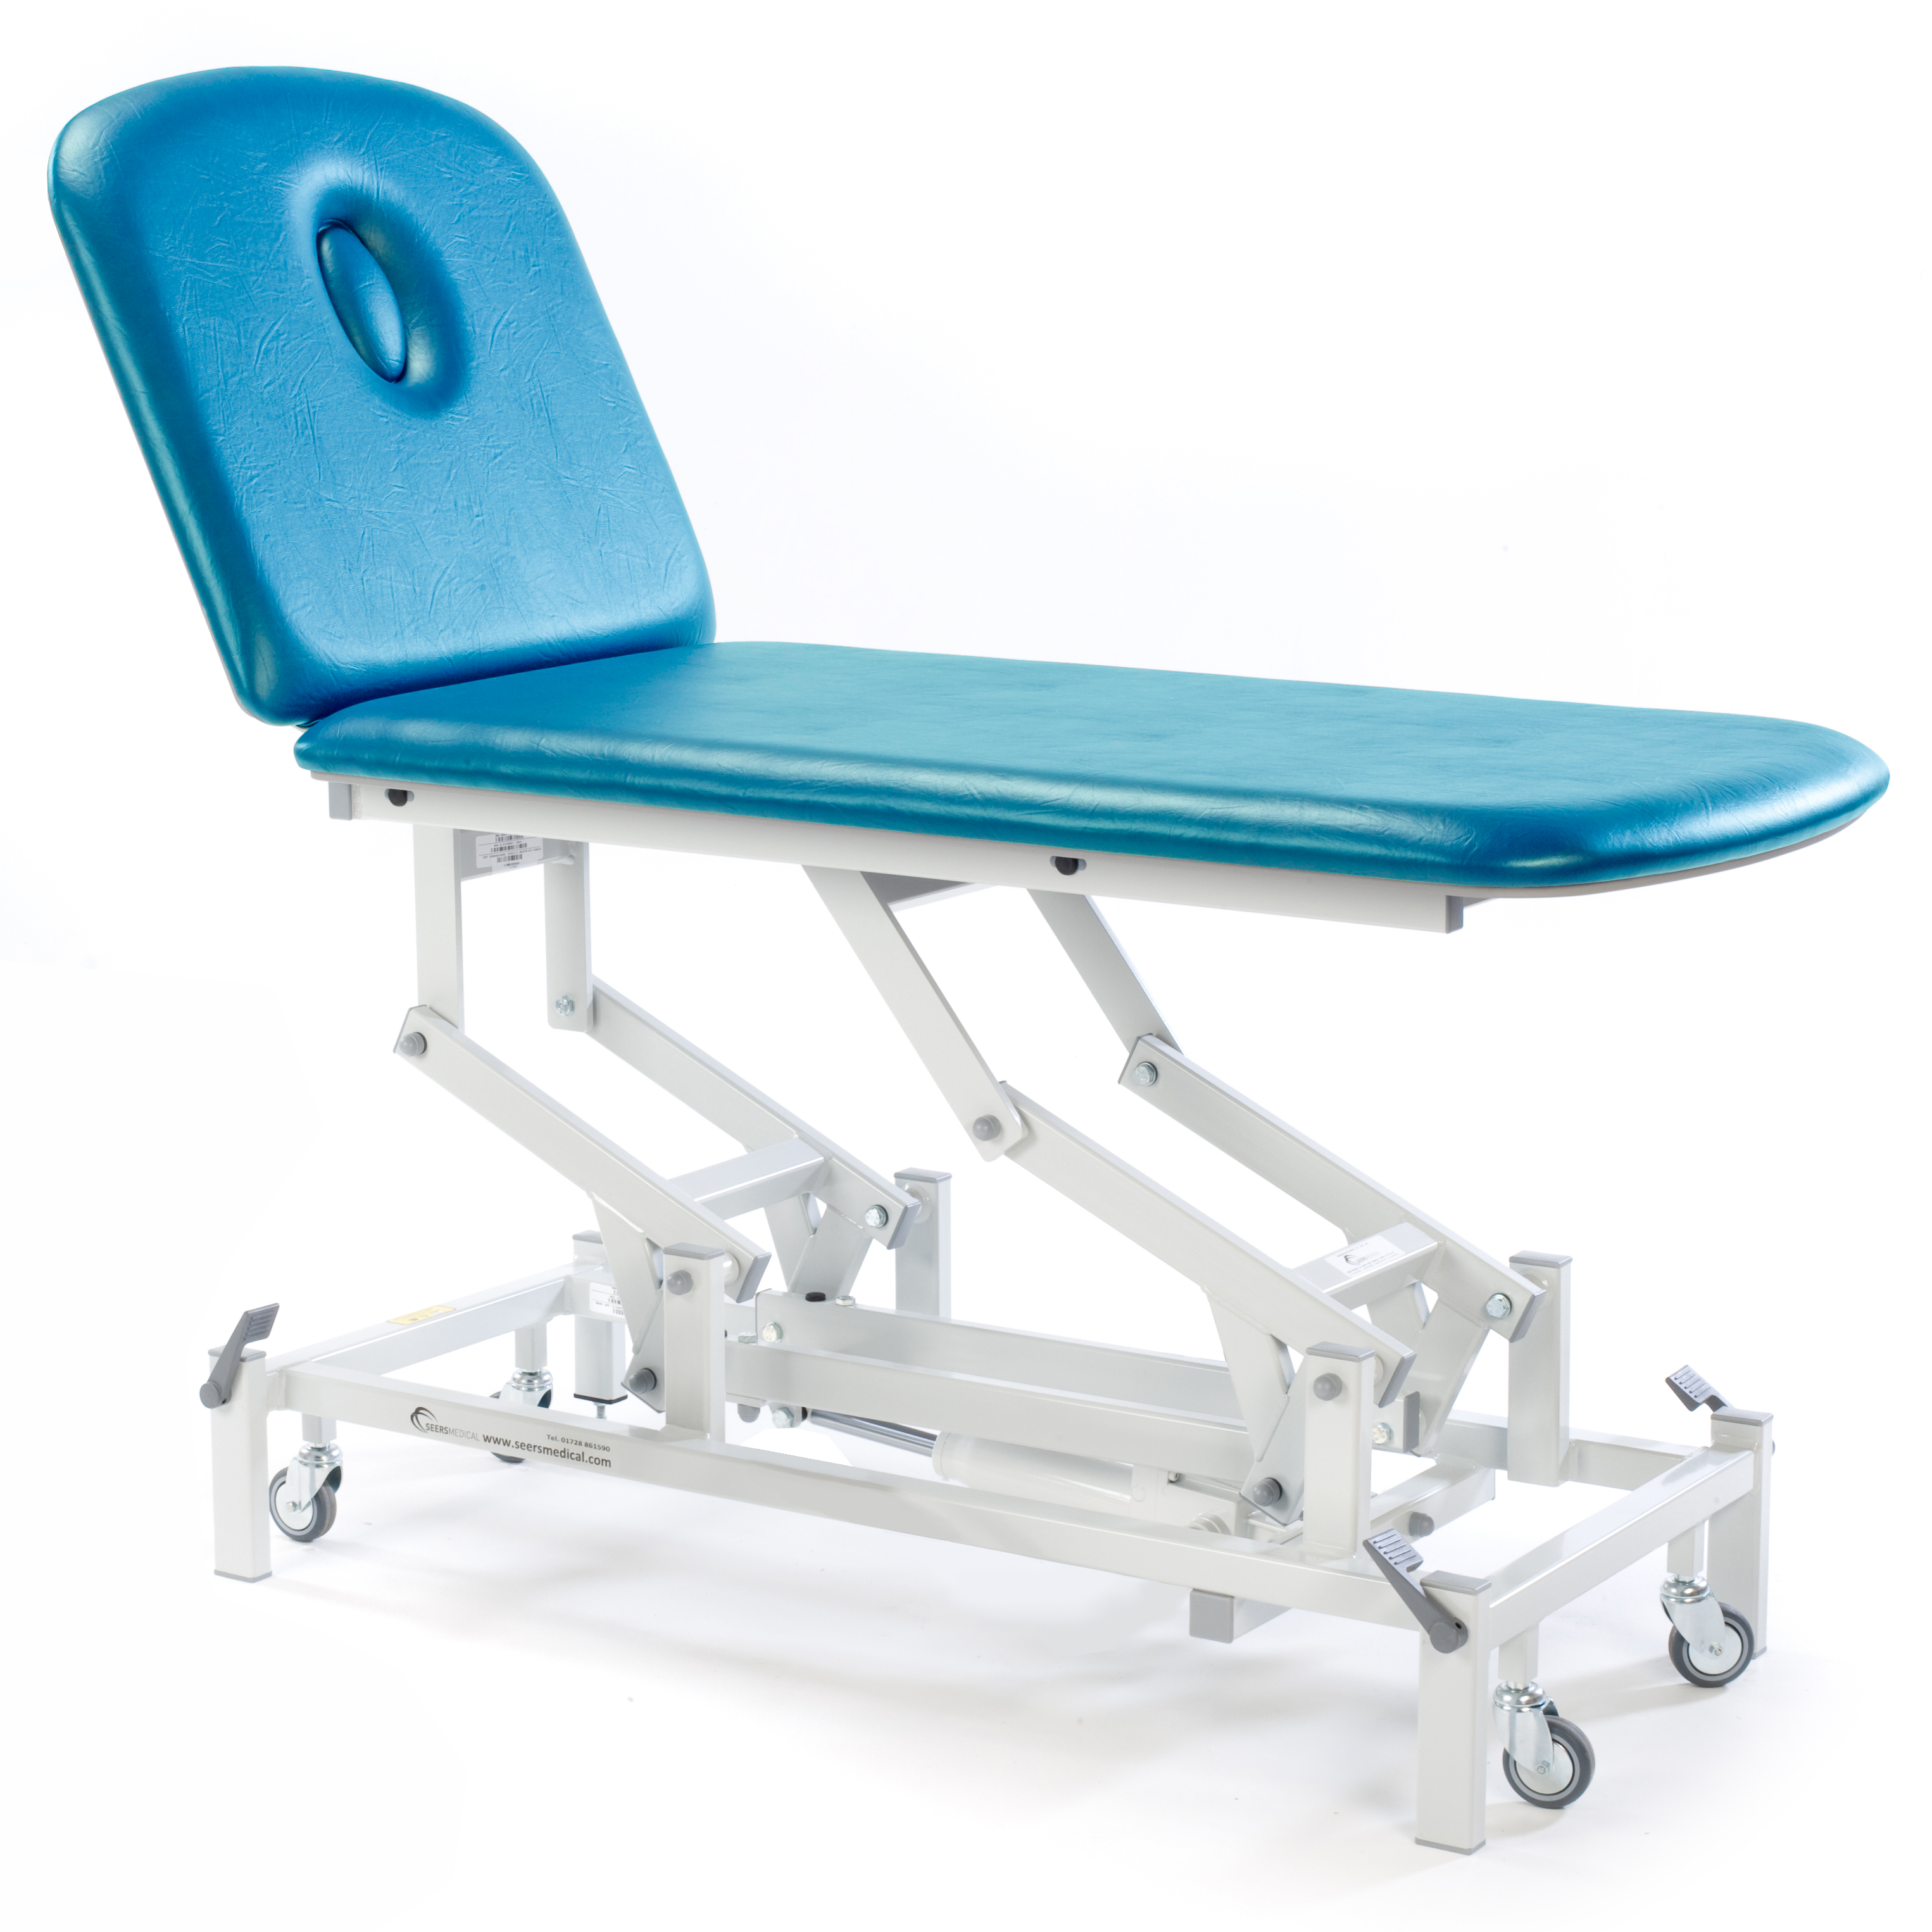 Remarkable Examination Couches Treatment Tables Seers Medical The Pabps2019 Chair Design Images Pabps2019Com